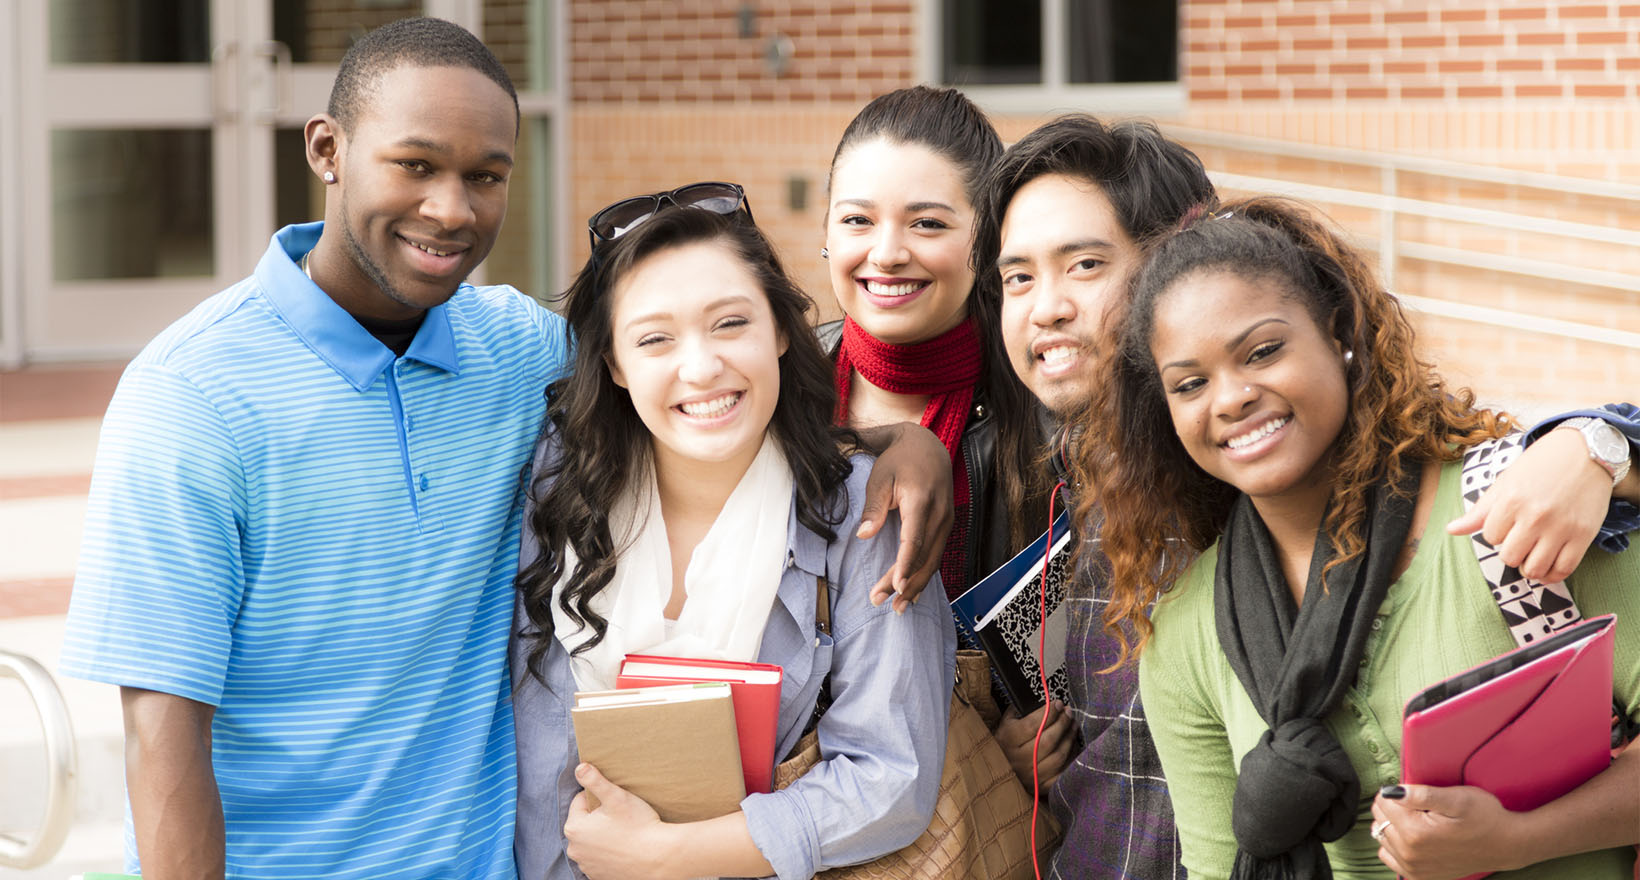 Pirates pitch competition for high school students